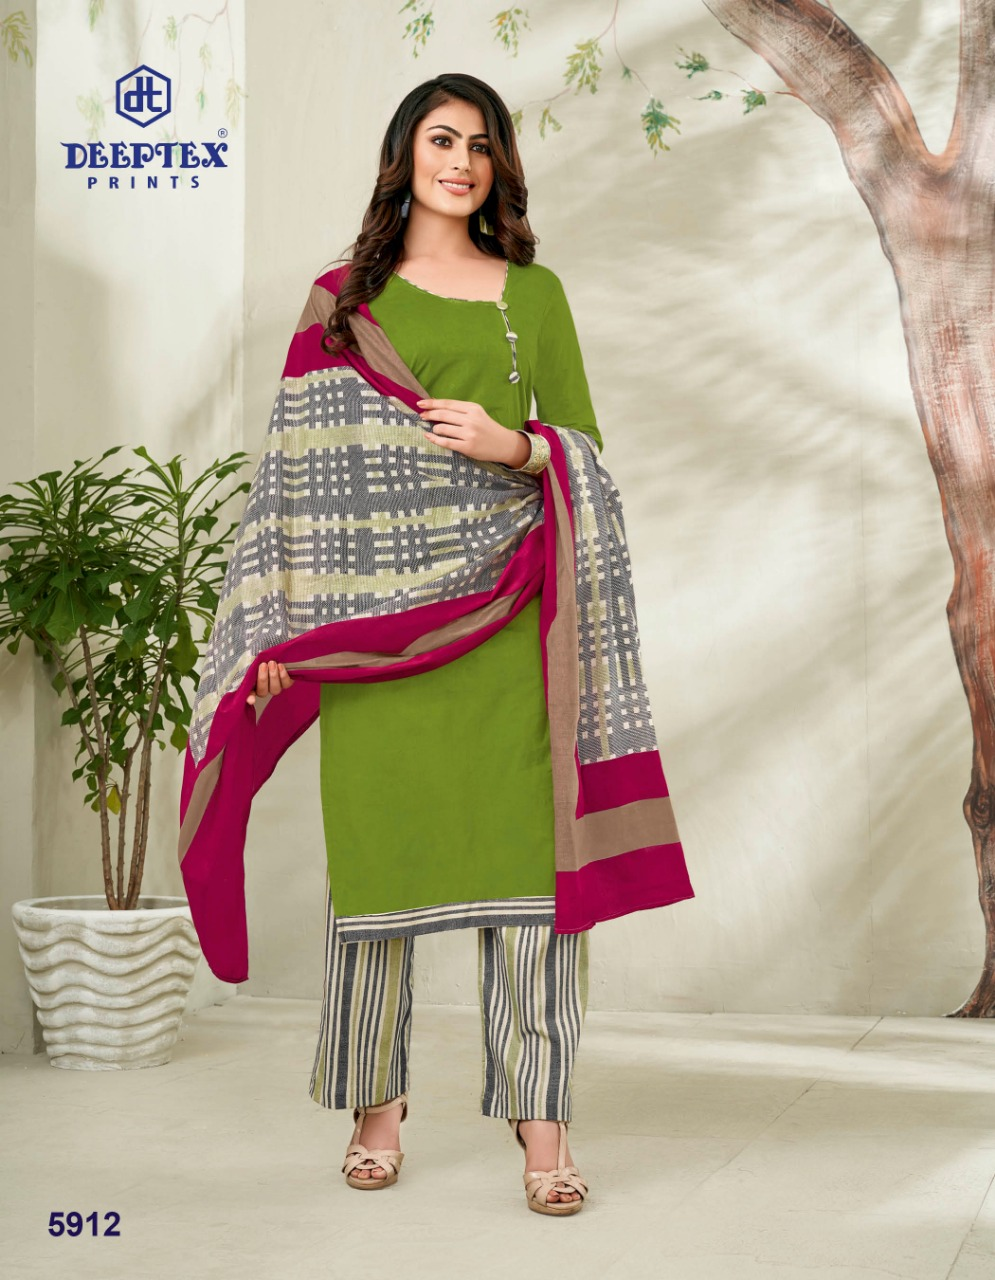 Deeptex Miss India 59 collection 19